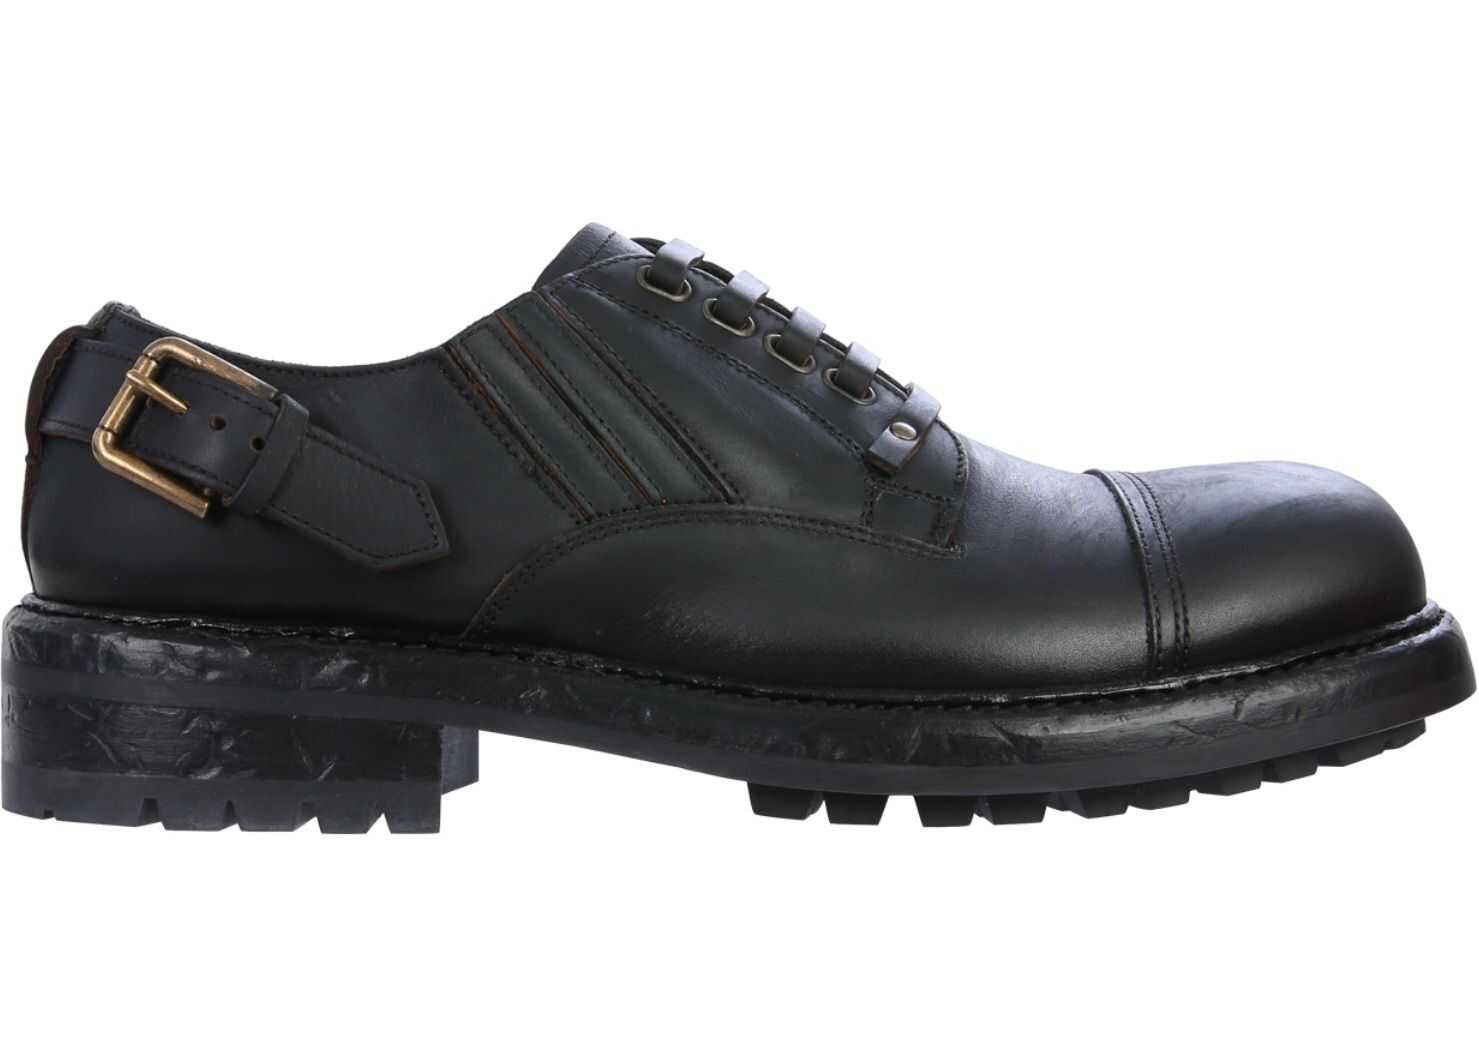 Dolce & Gabbana Derby Shoe With Laces A10656_AW37480999 BLACK imagine b-mall.ro